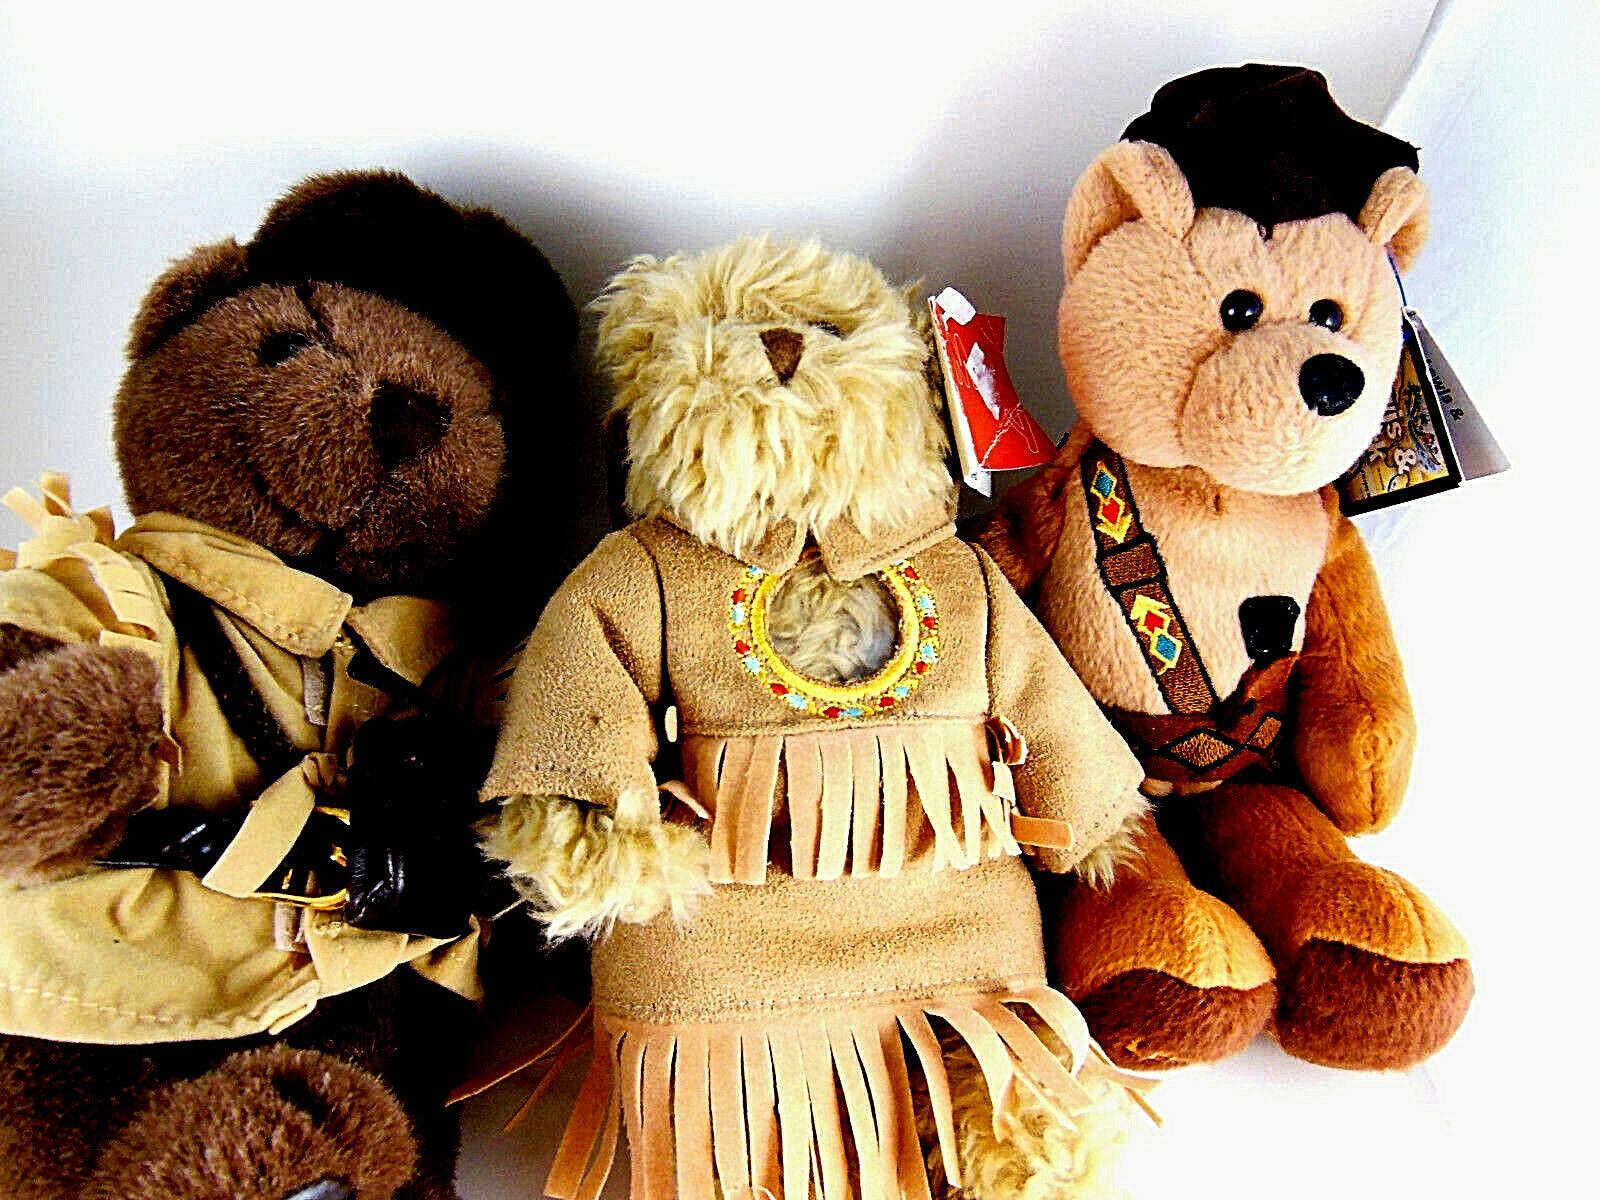 Primary image for Daniel Boone Sacagawea Meriwether Lewis teddy bears with baby papoose 9""